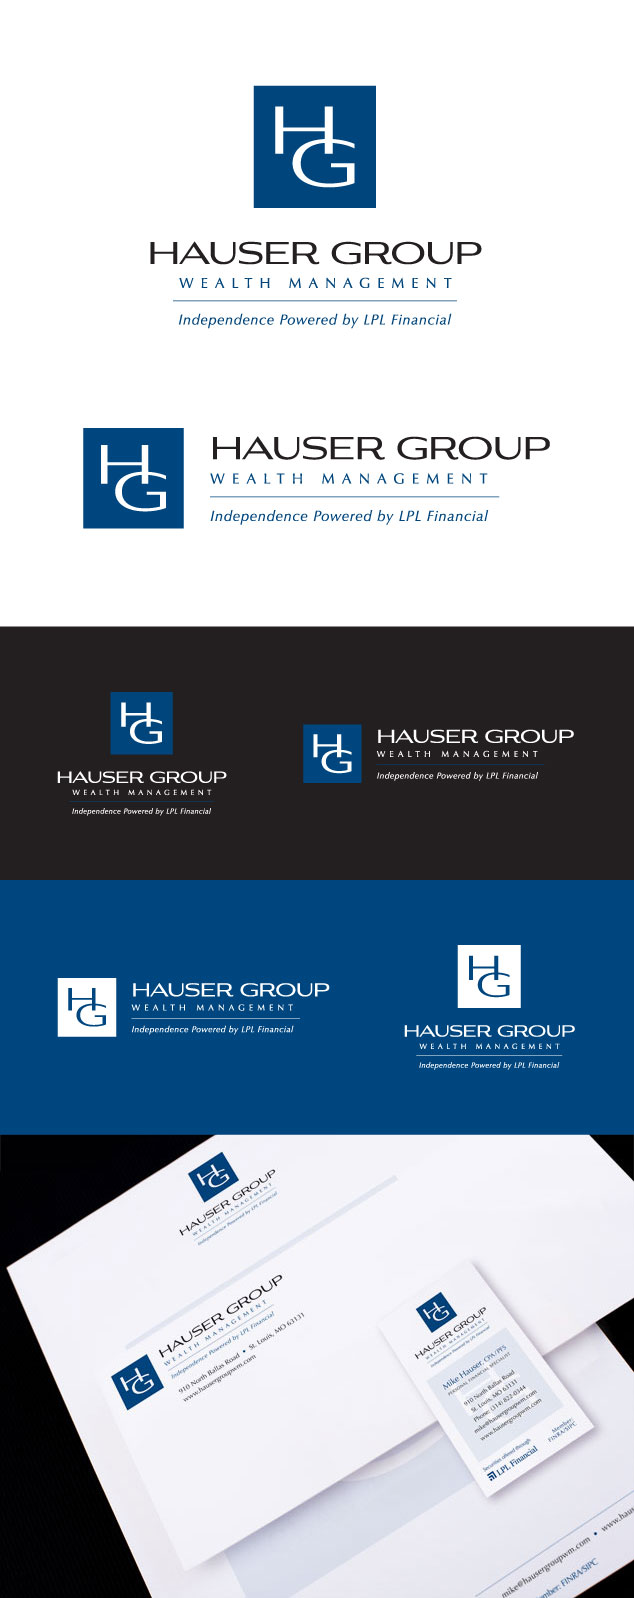 Hauser Group logo design and branding